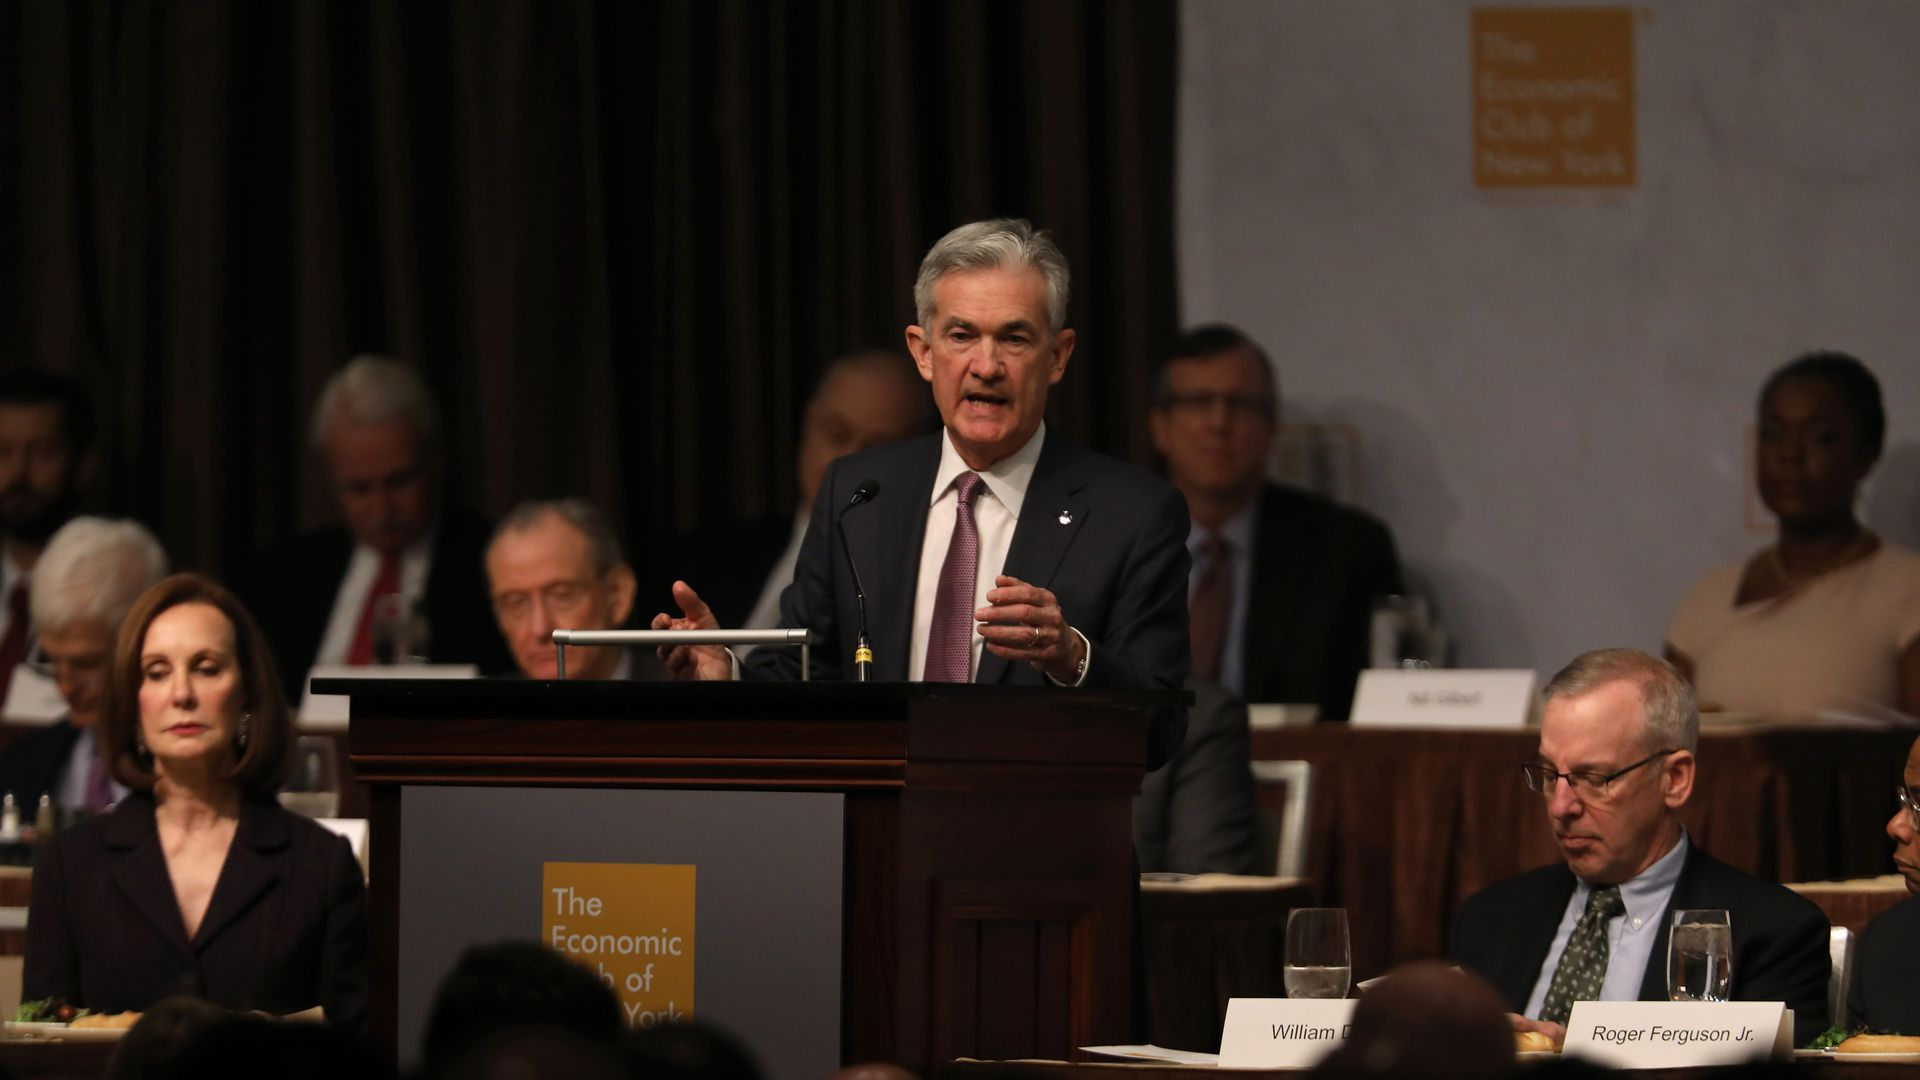 NEW YORK, NEW YORK - NOVEMBER 28: Federal Reserve Chairman Jerome Powell speaks at the Economic Club of New York on November 28, 2018 in New York City.